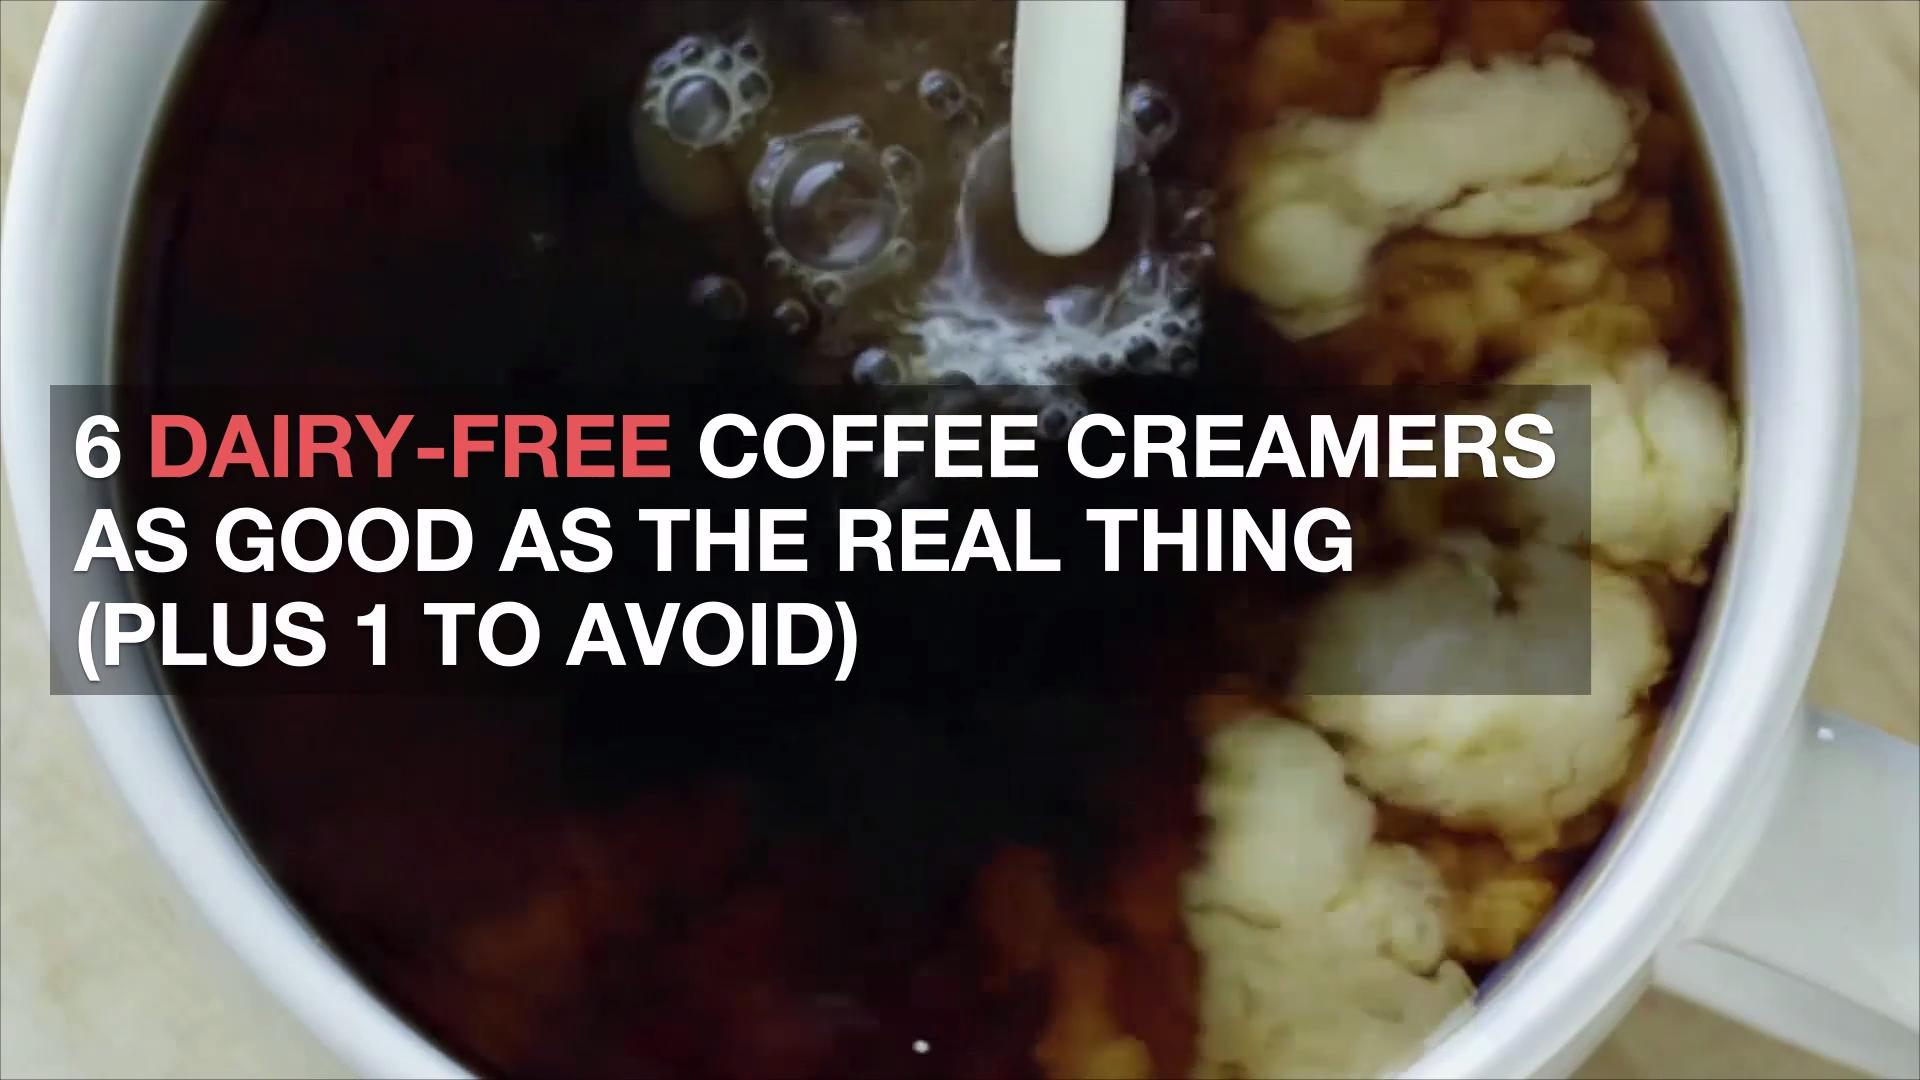 6 Dairy-Free Coffee Creamers as Good as the Real Thing (Plus 1 to Avoid) - Cooking Light